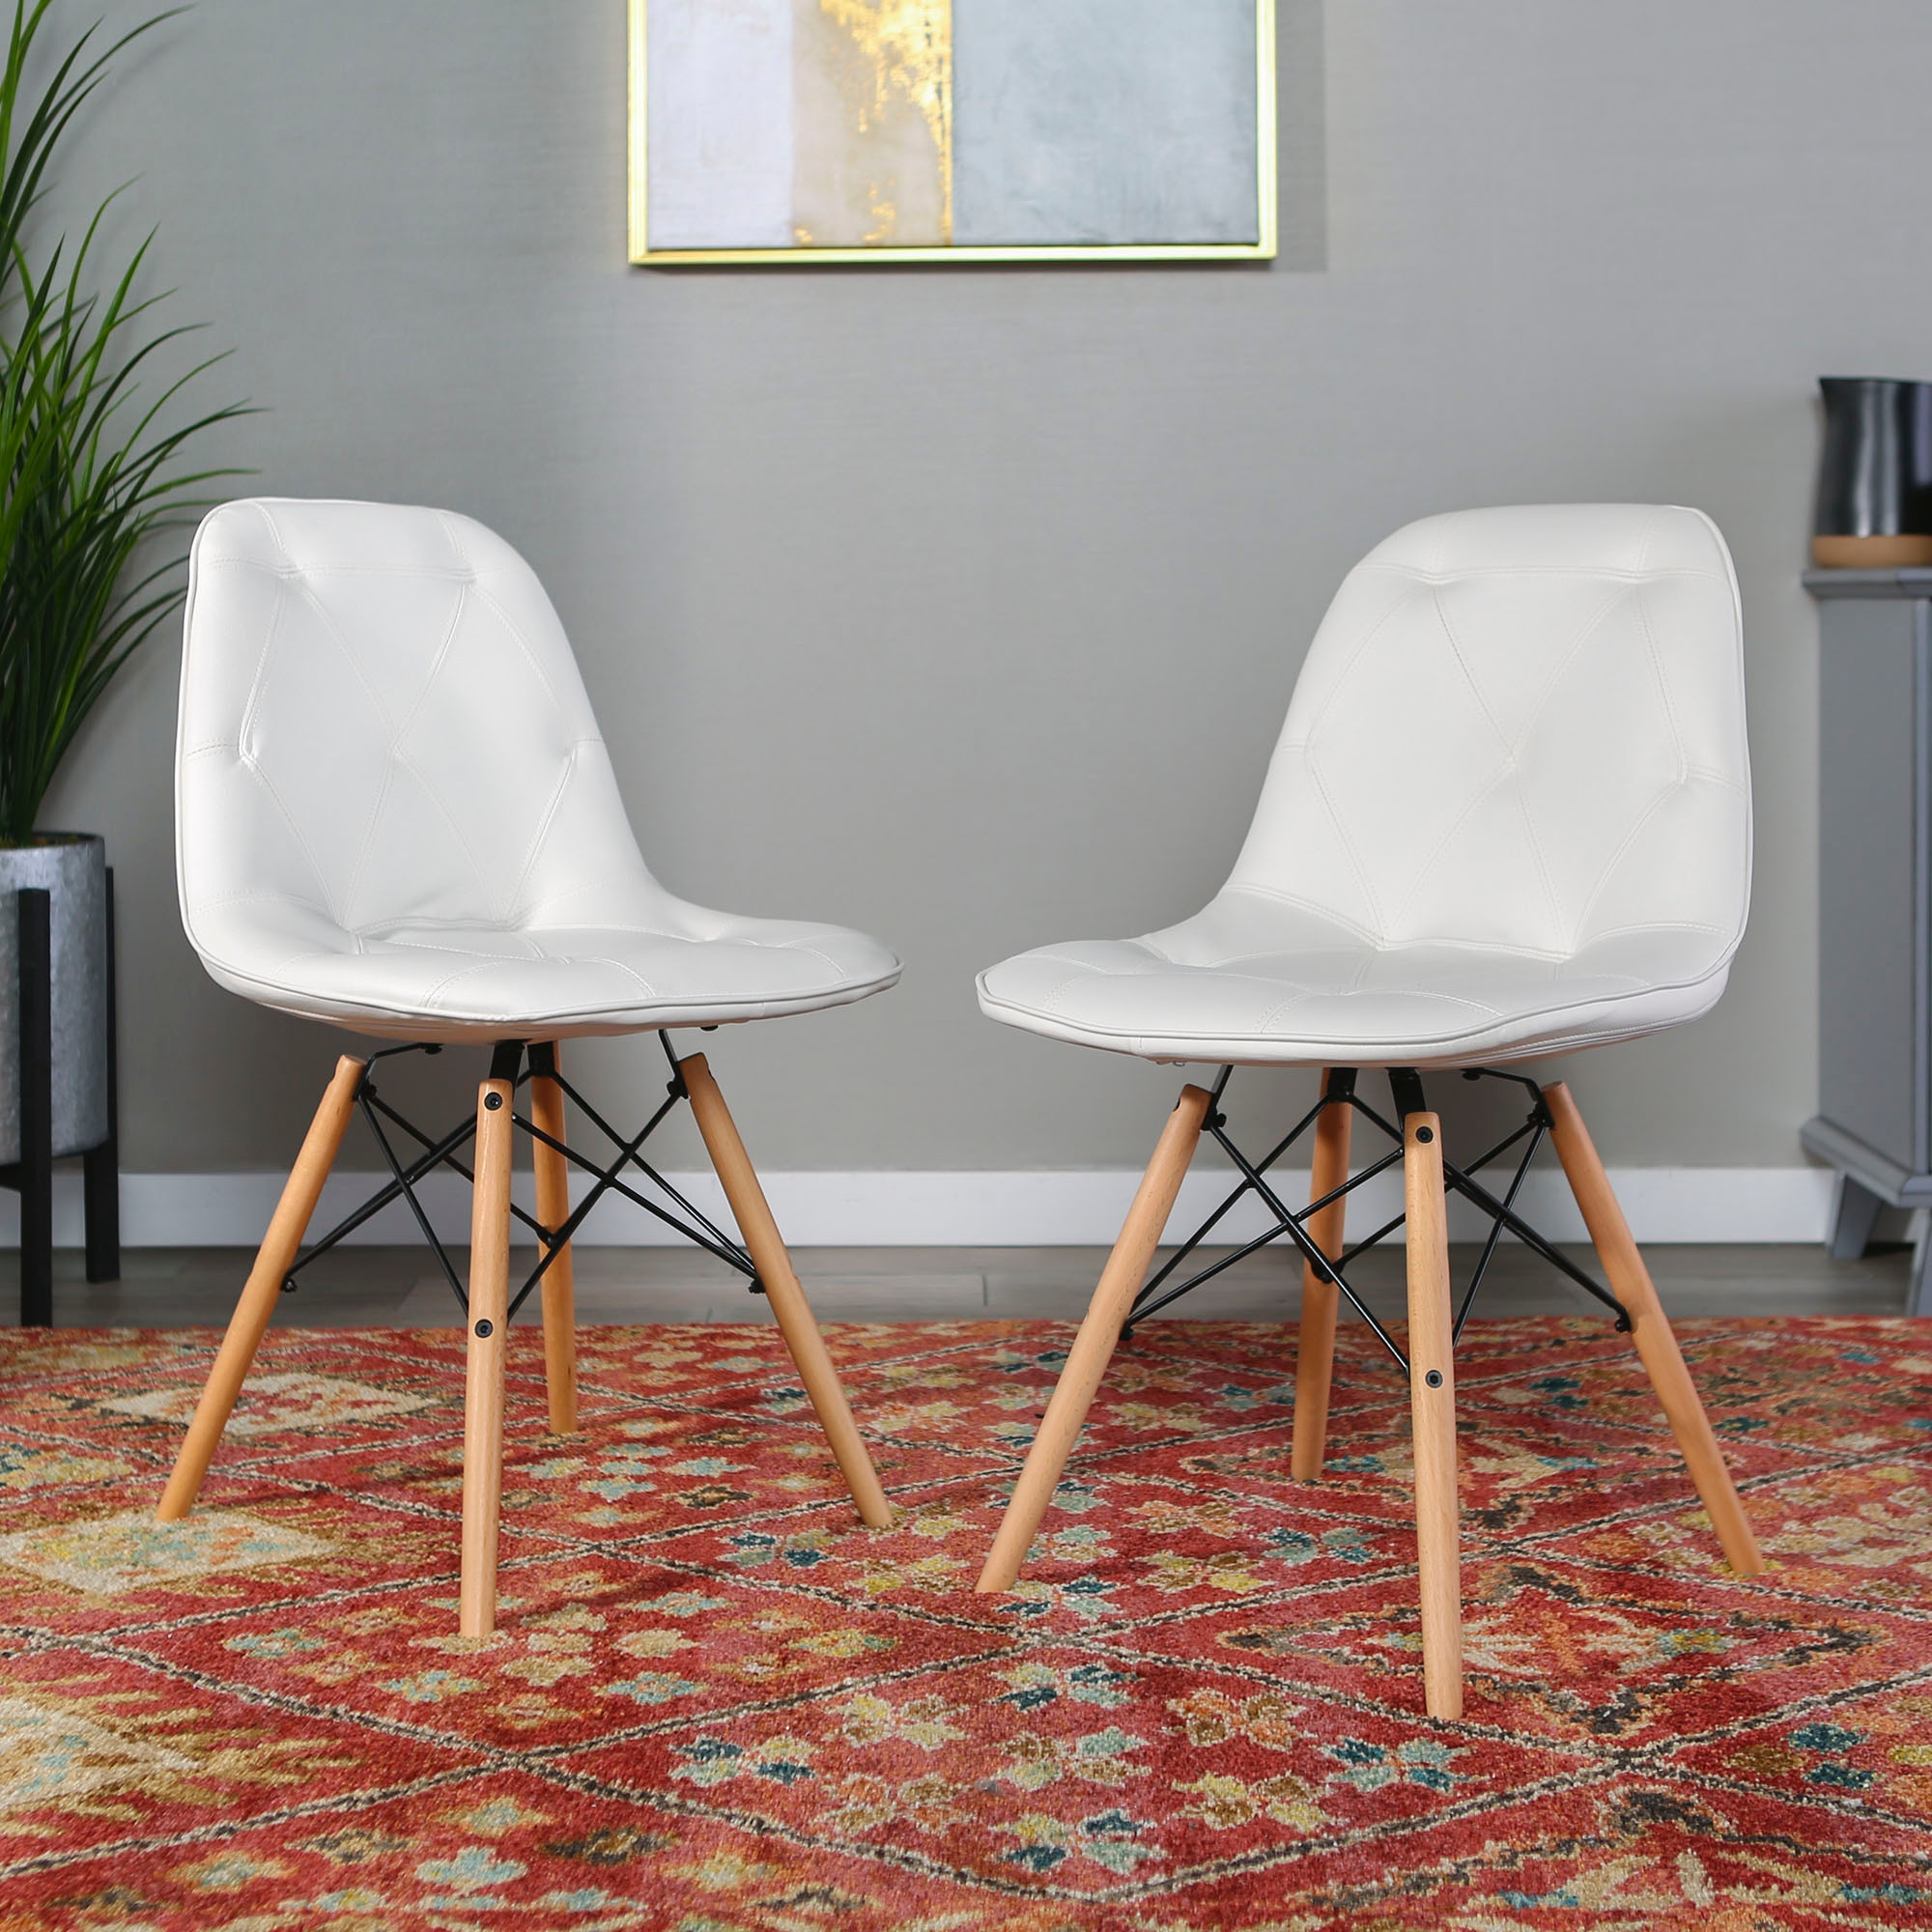 Ft Myers Living Room Mid Century Modern Upholstered Faux Leather Eames Home  Office Dining Kitchen Chairs, set of 2 WEDCH18PU2WH Walter E. Smithe ...